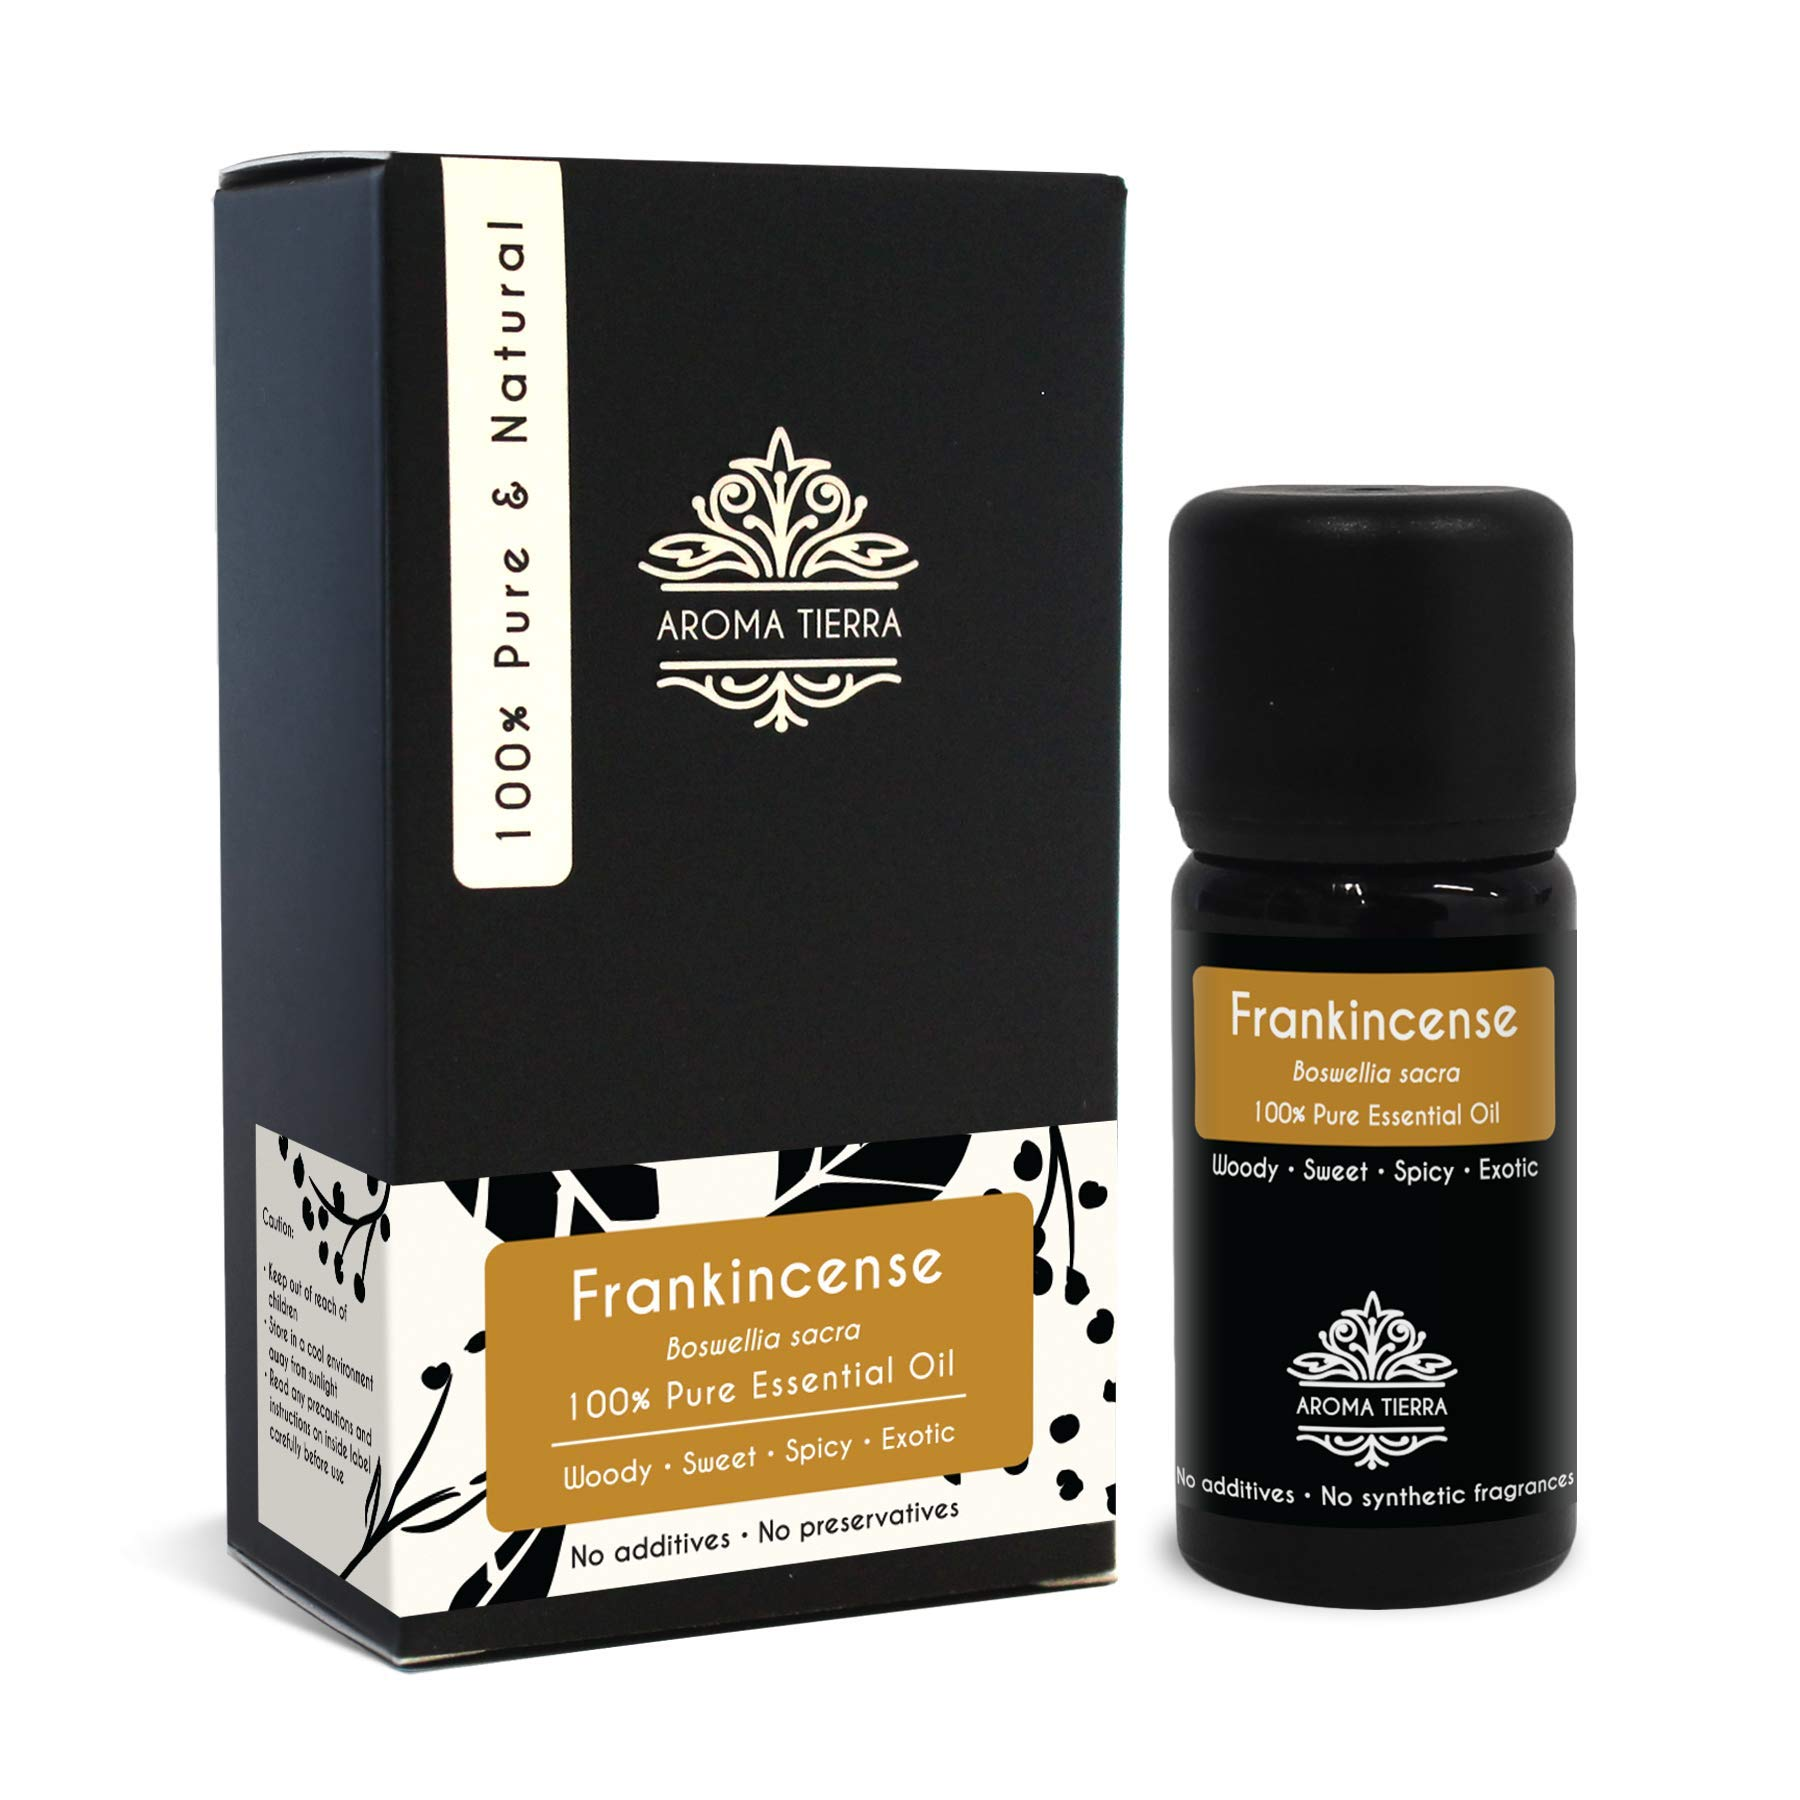 Aroma Tierra Sacred Frankincense Essential Oil (Boswellia Sacra) - from Oman - 100% Pure, Natural, Undiluted (10ml) by Aroma Tierra